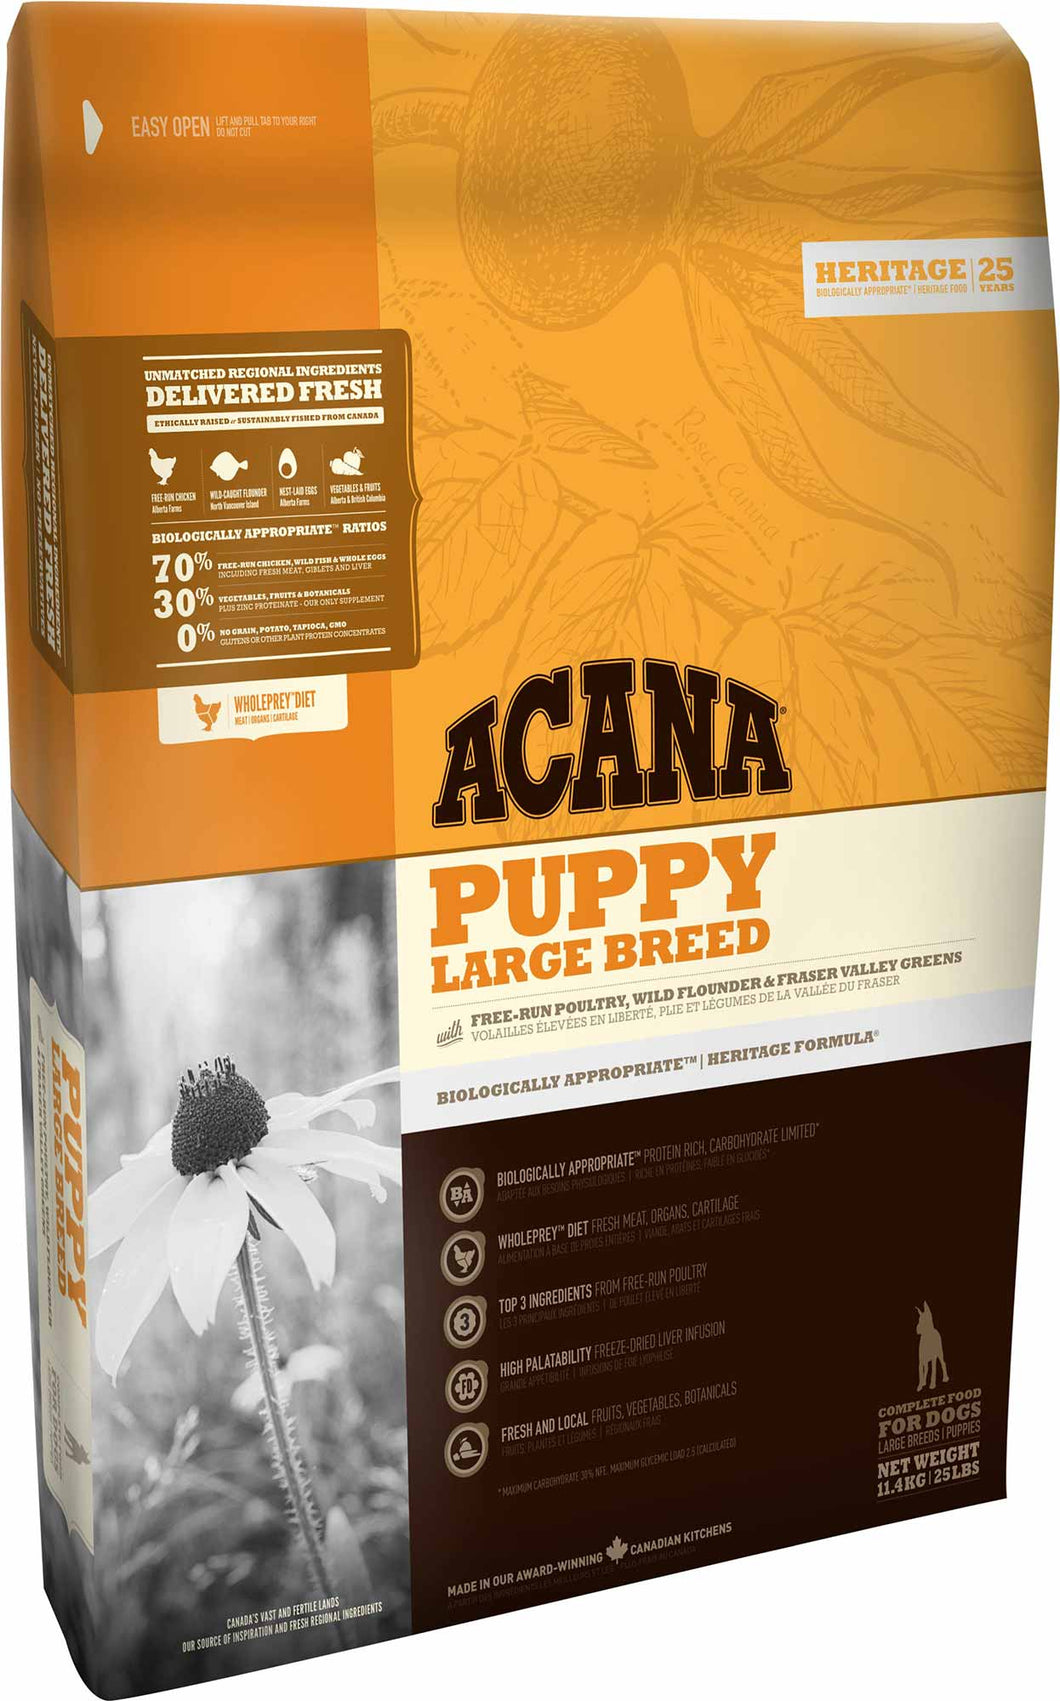 ACANA Puppy Large Breed Premium Dog Food